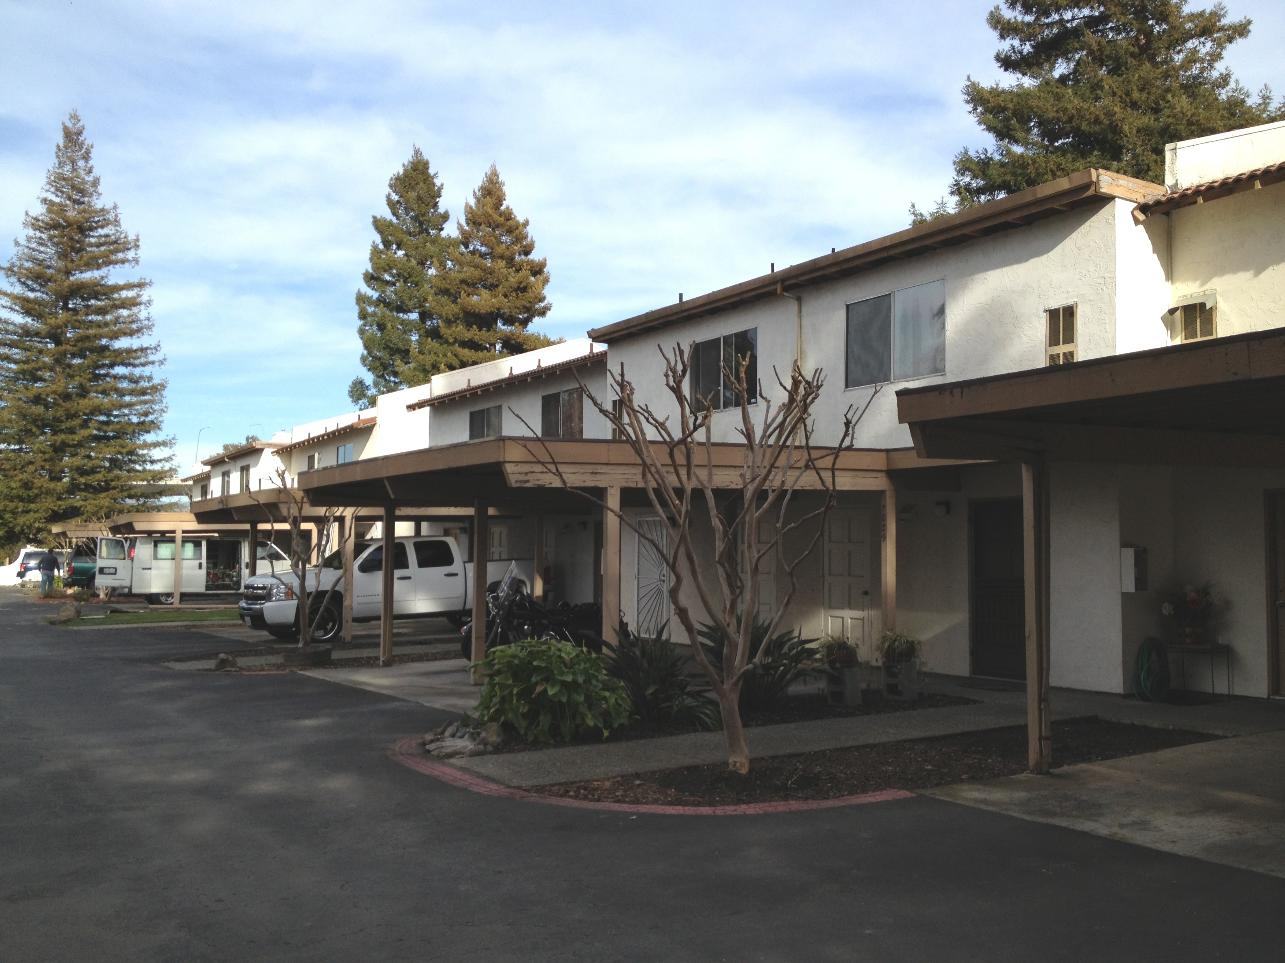 1095 Marina Drive, Napa, CA 94559 42 Unit Multi-Family Apartment/Condo Conversion $5,800,000